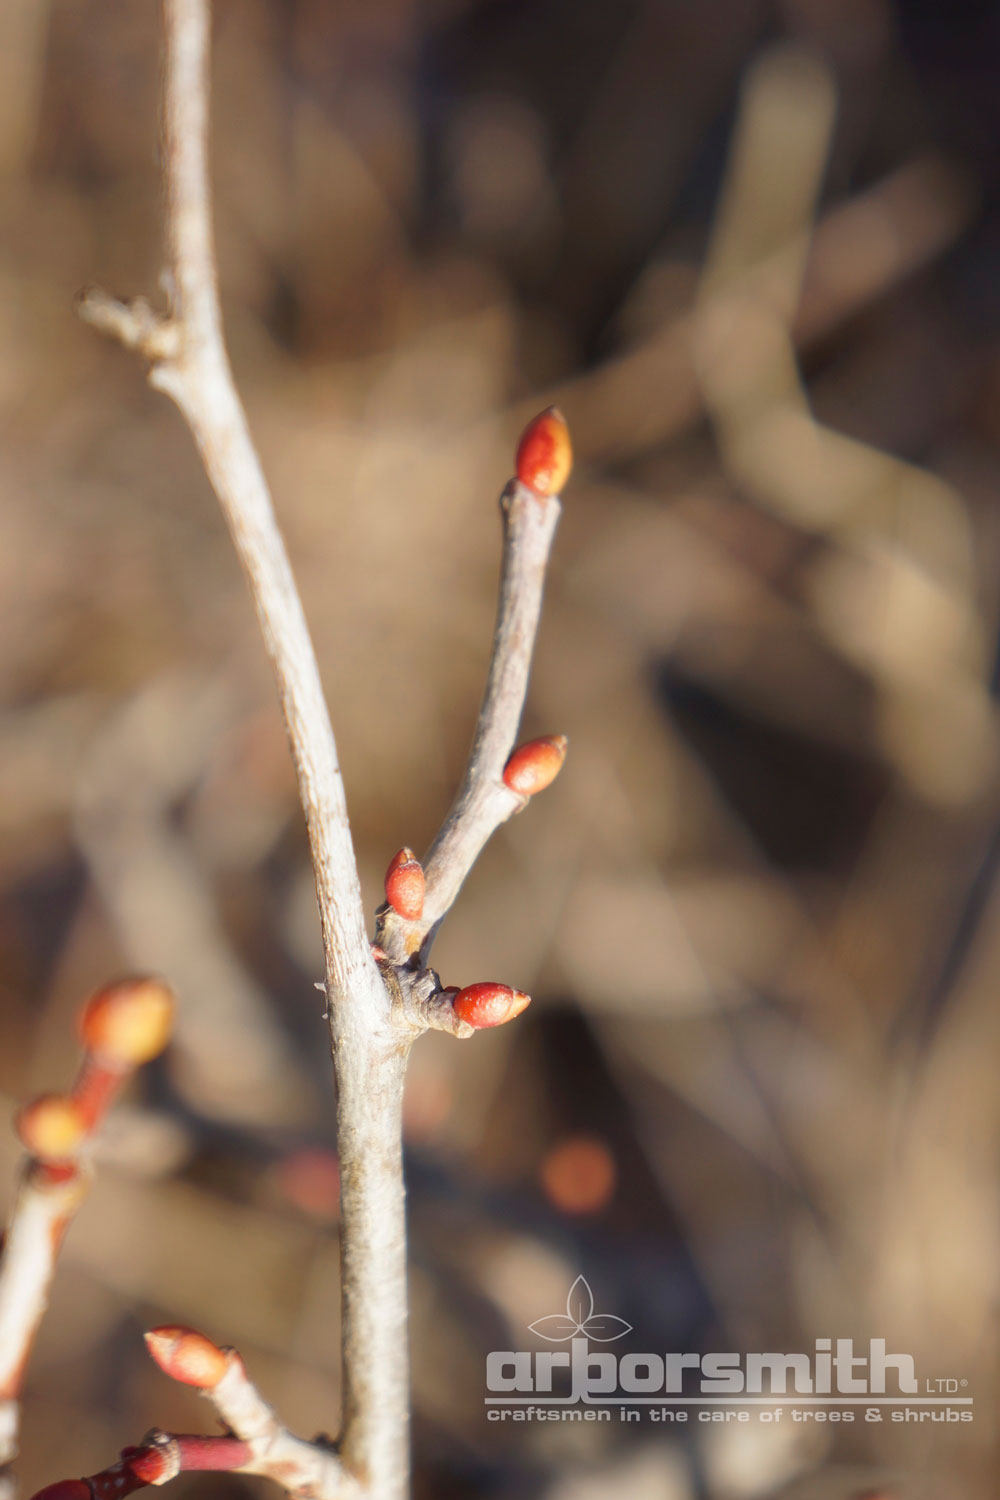 Linden tree buds in the winter, live and well